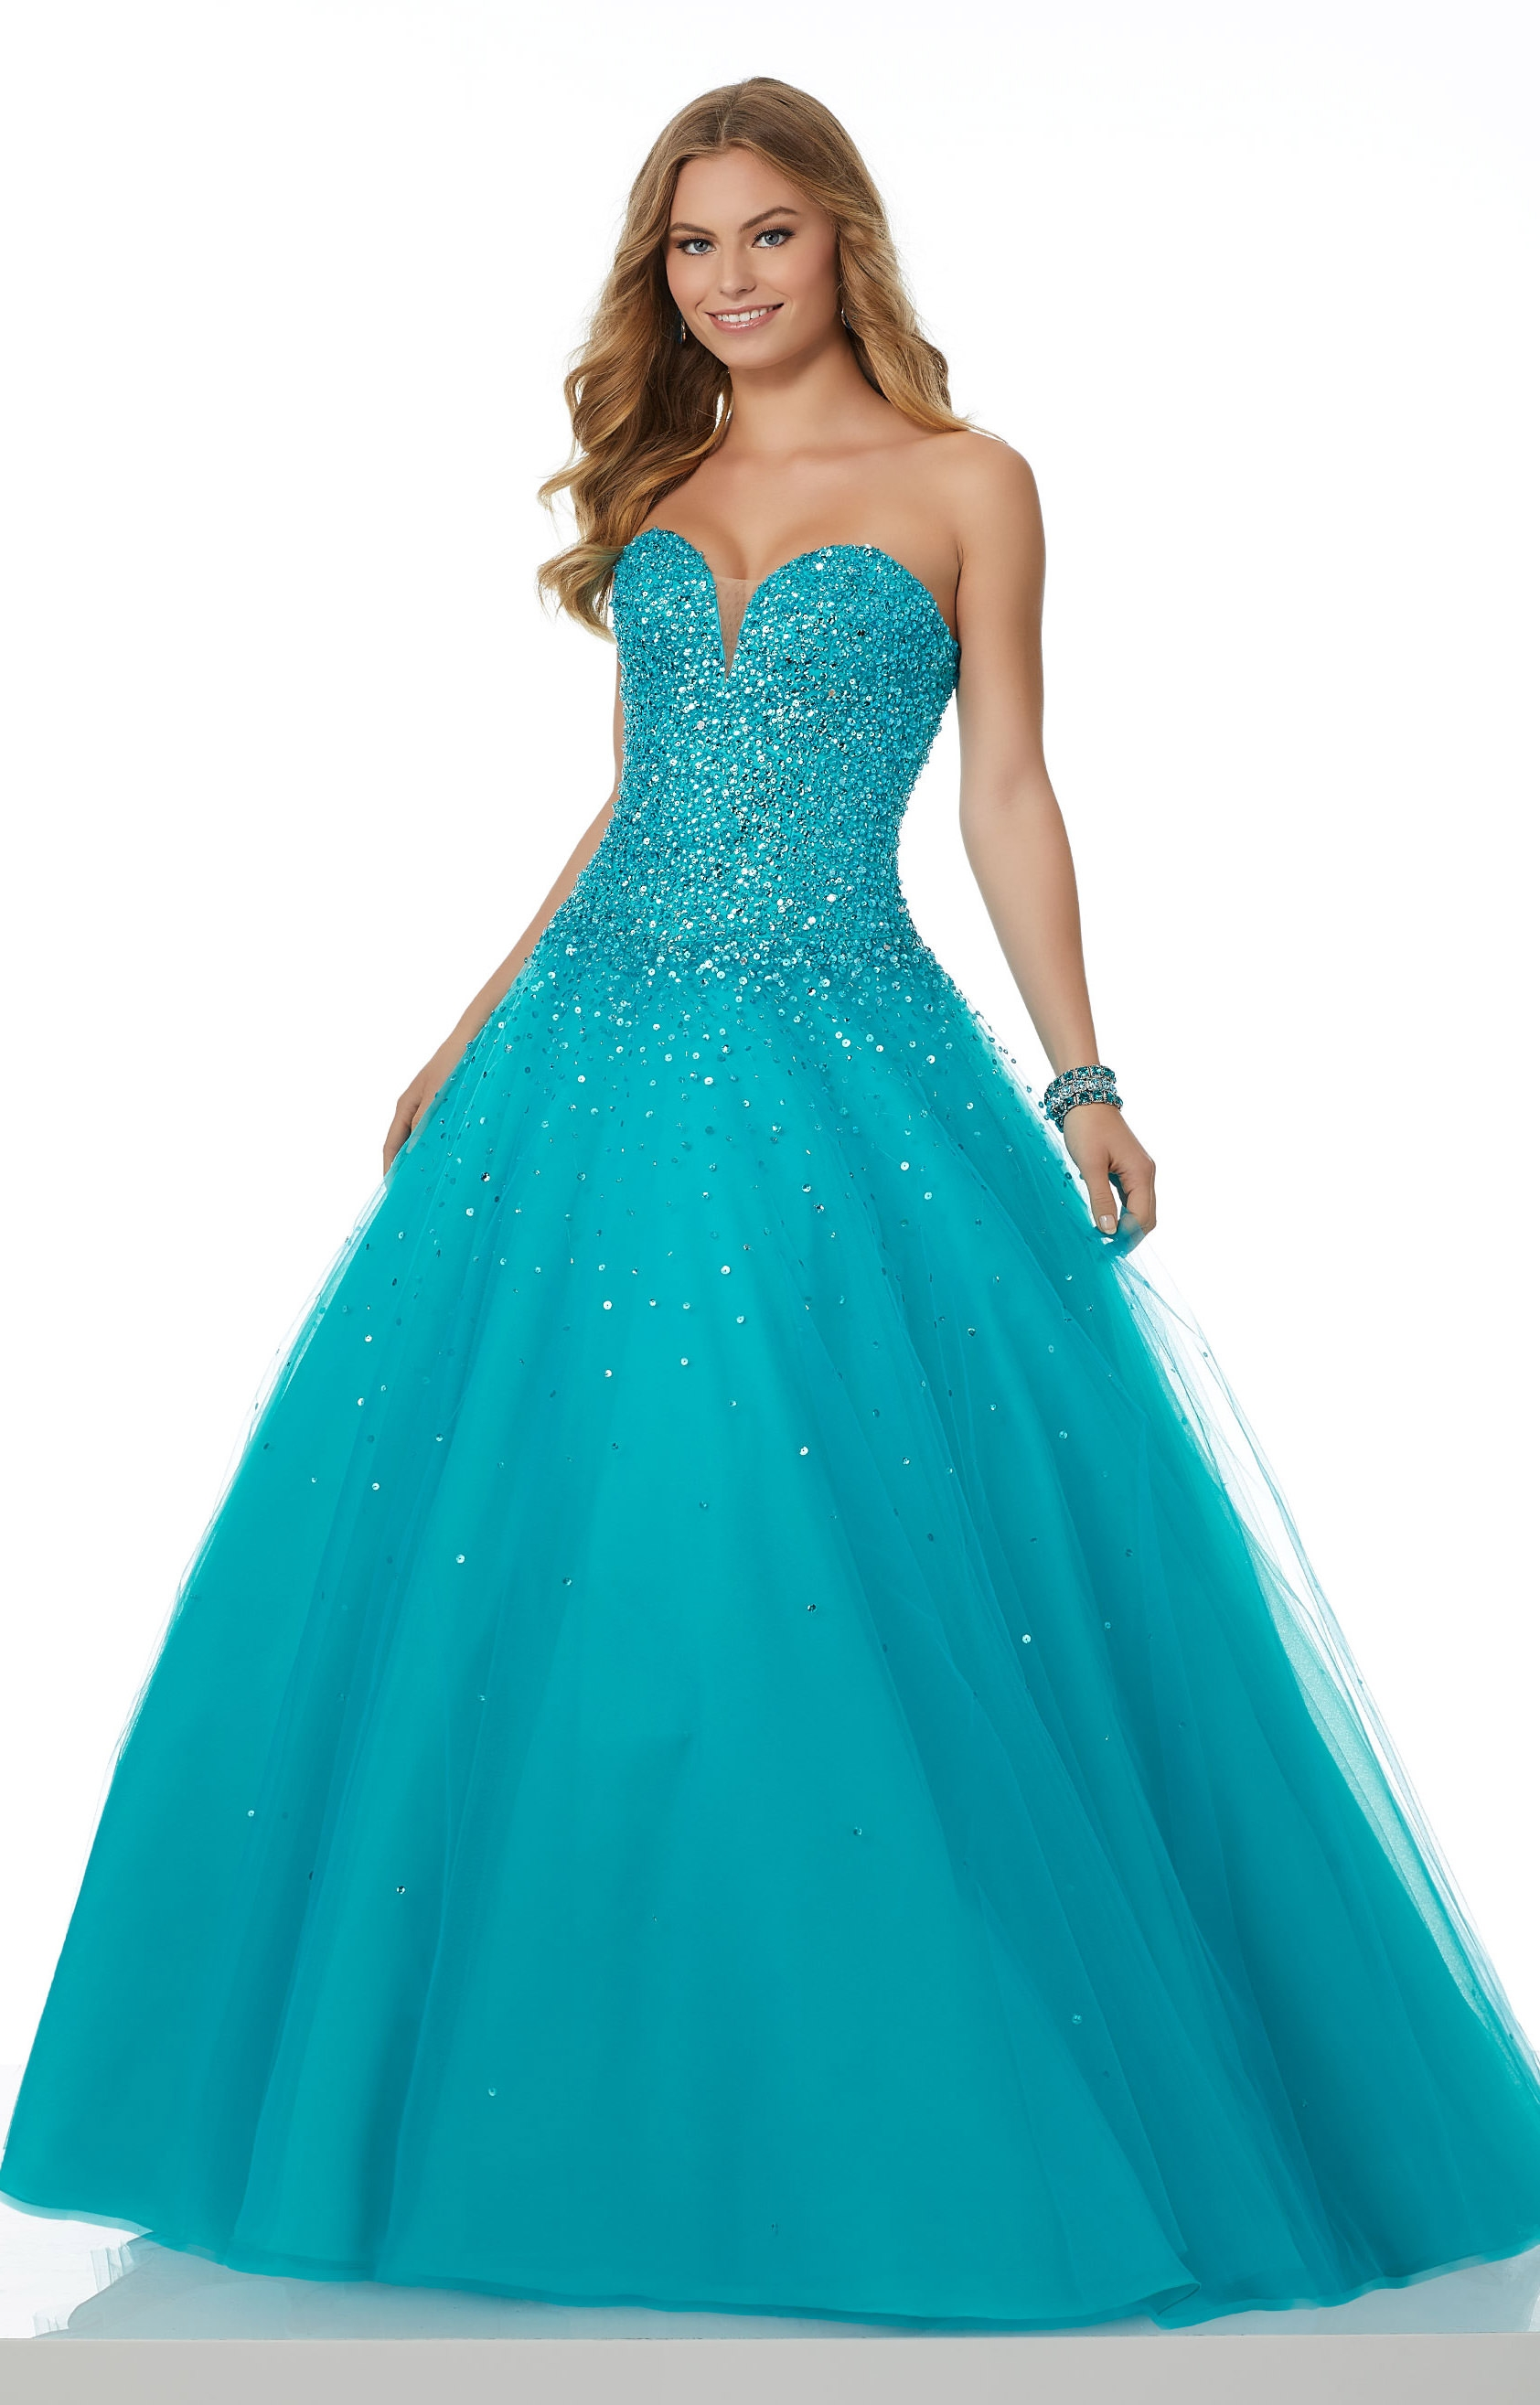 Mori Lee Prom 42040 - Sweetheart Strapless Sequined Ball Gown Prom Dress